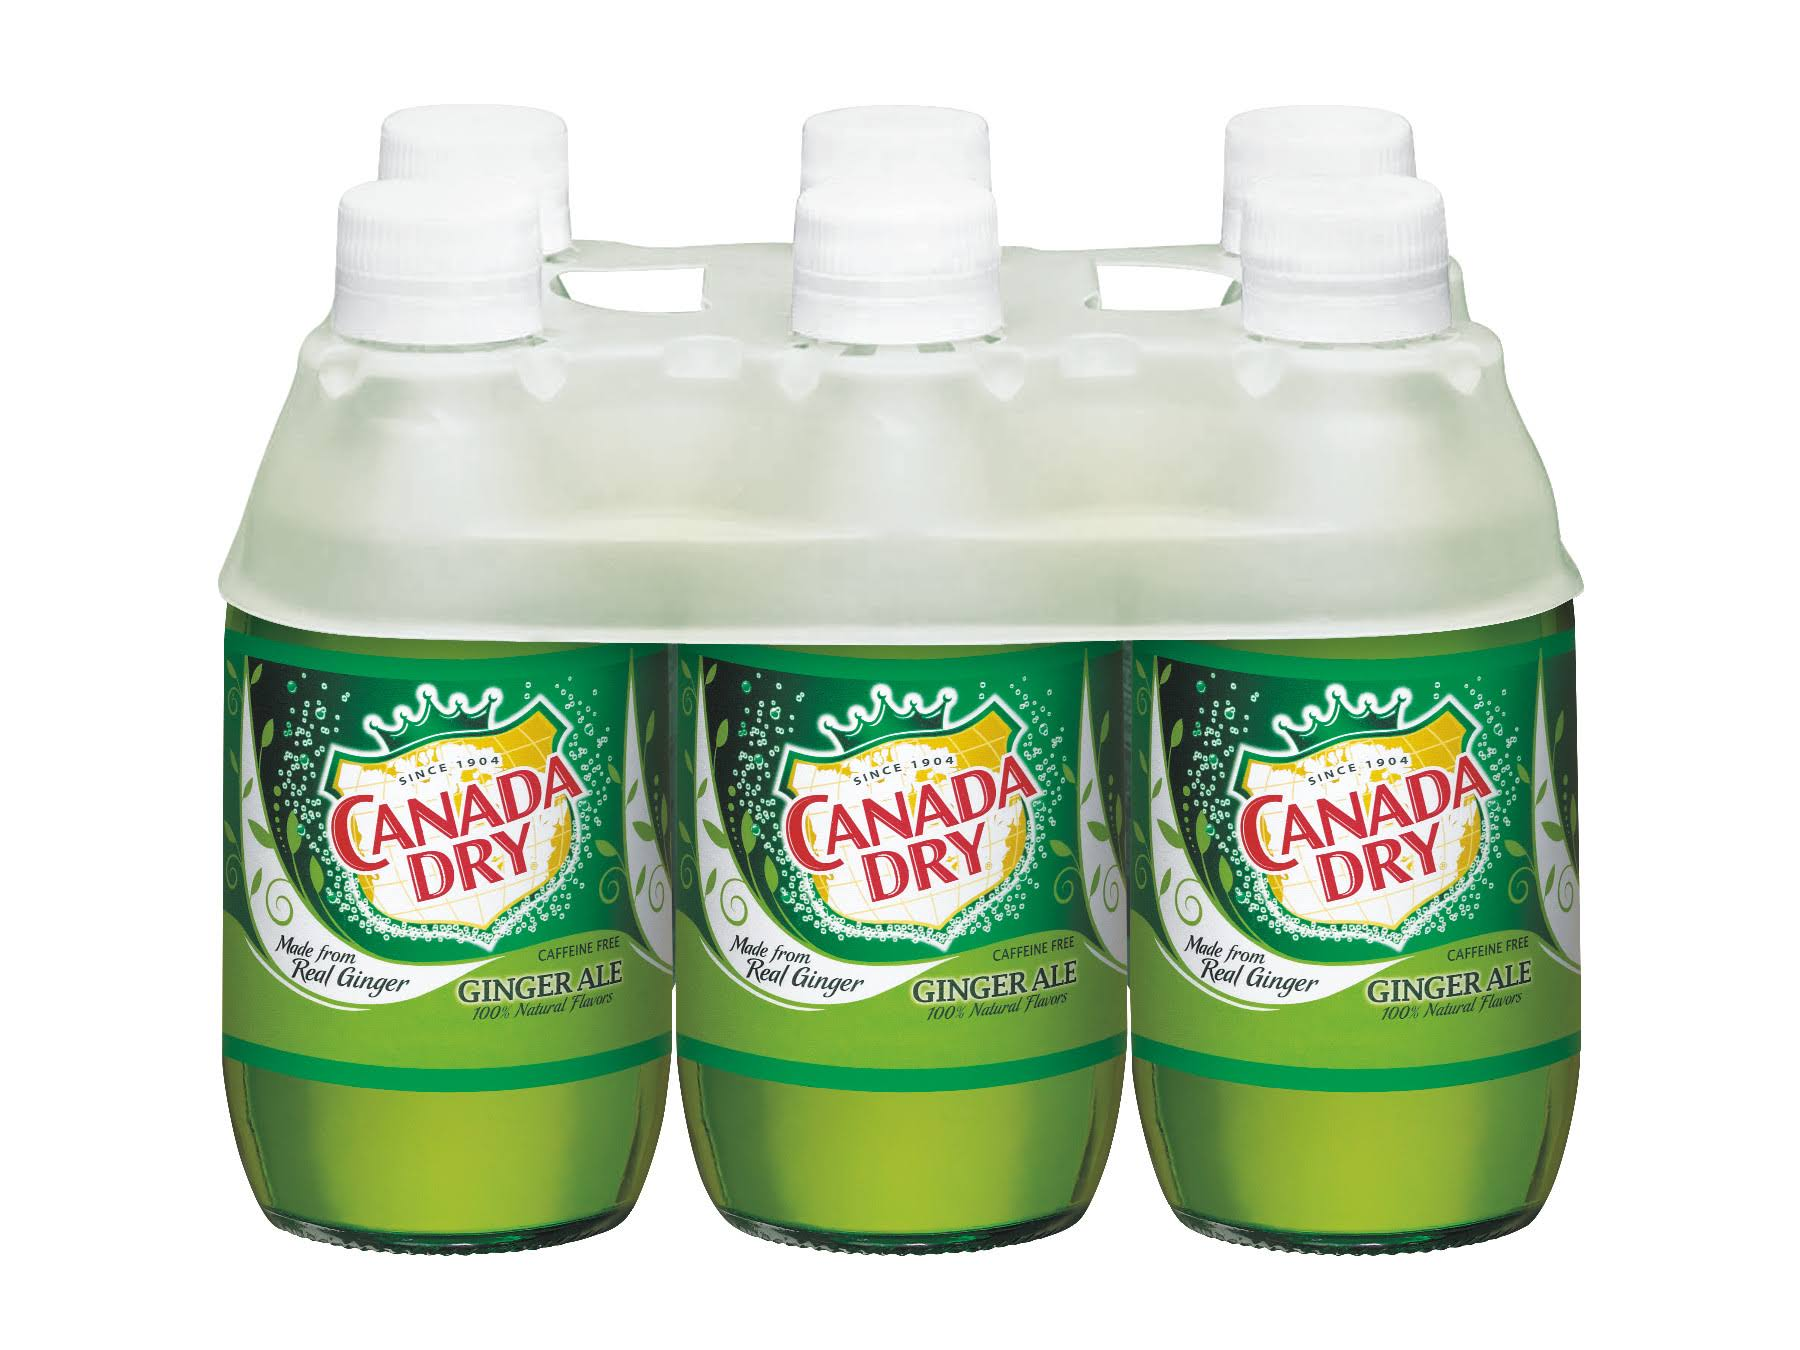 Canada Dry Ginger Ale, 6-Pack - 6 pack, 10 fl oz bottle